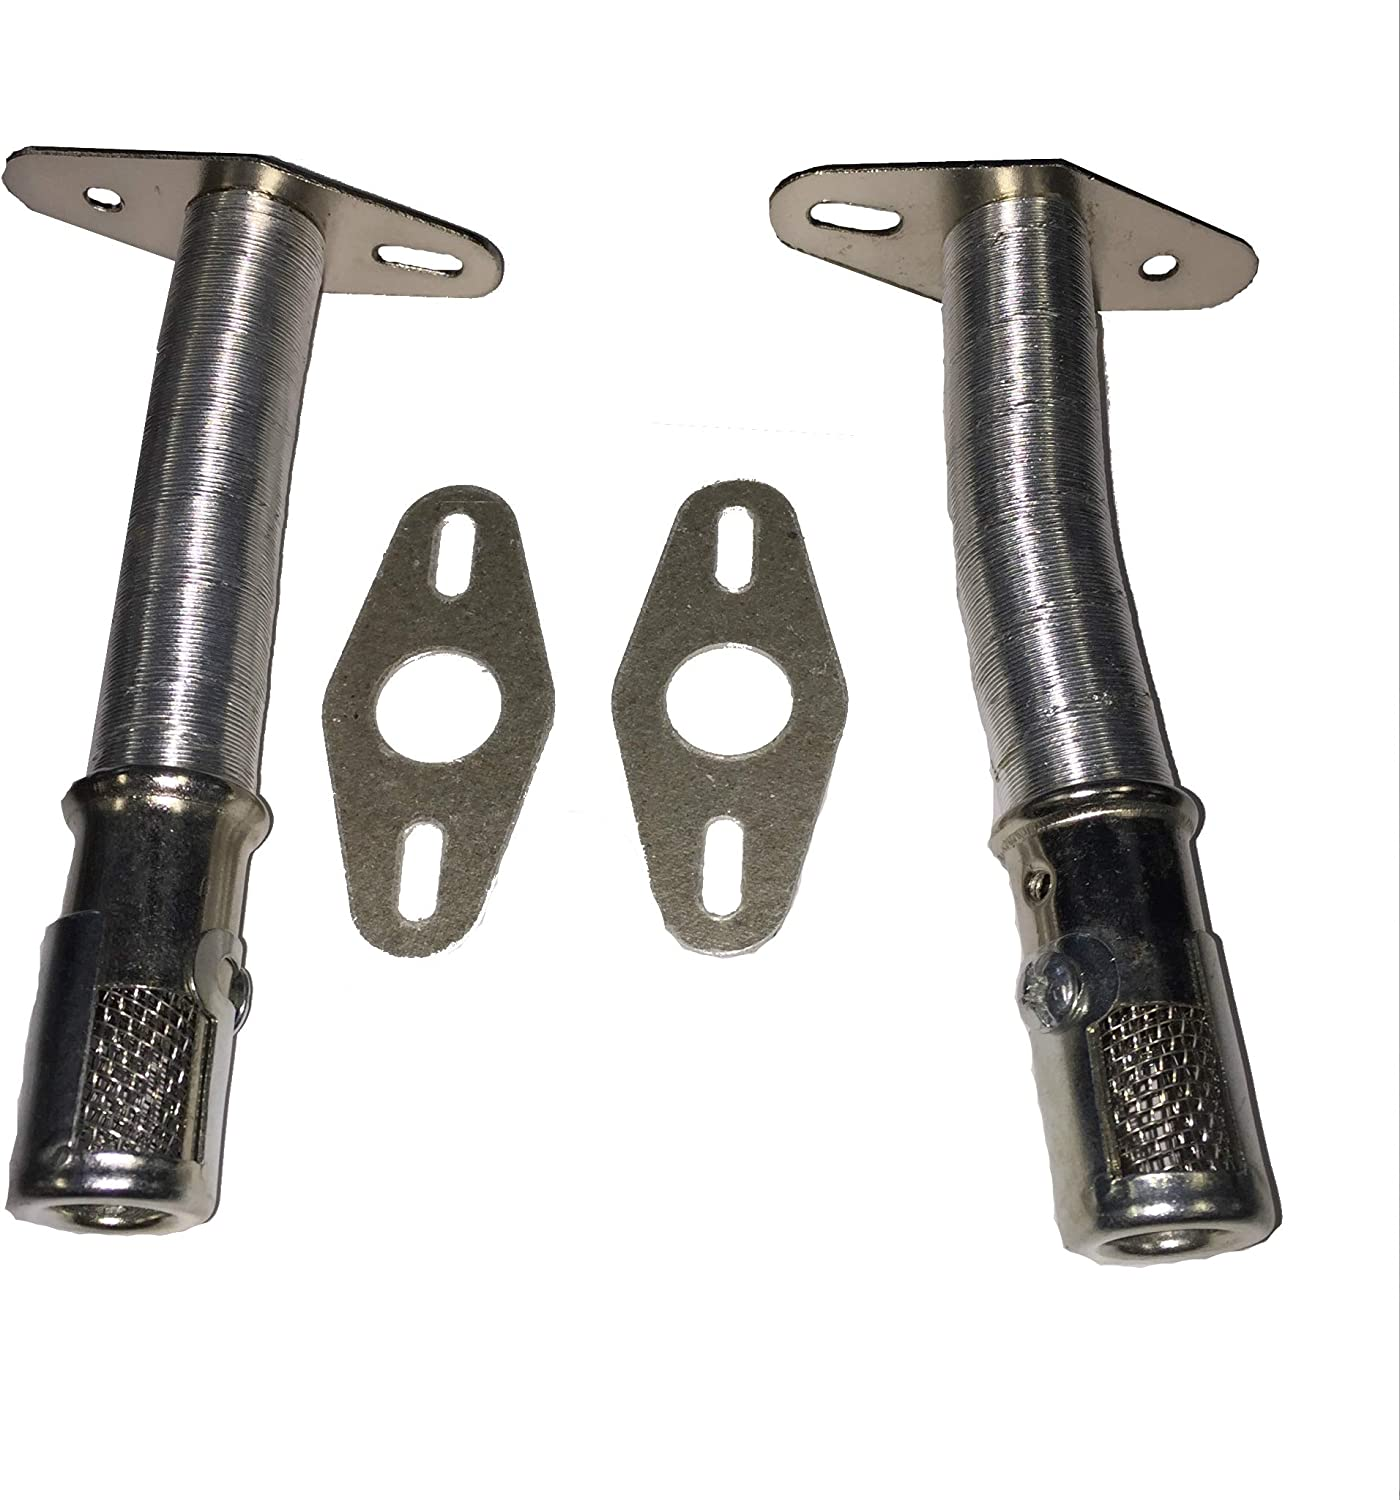 2-Pack Universal Stainless Steel Extendable Venturi Tube Set Used for Gas Grills That Require an H-Burner